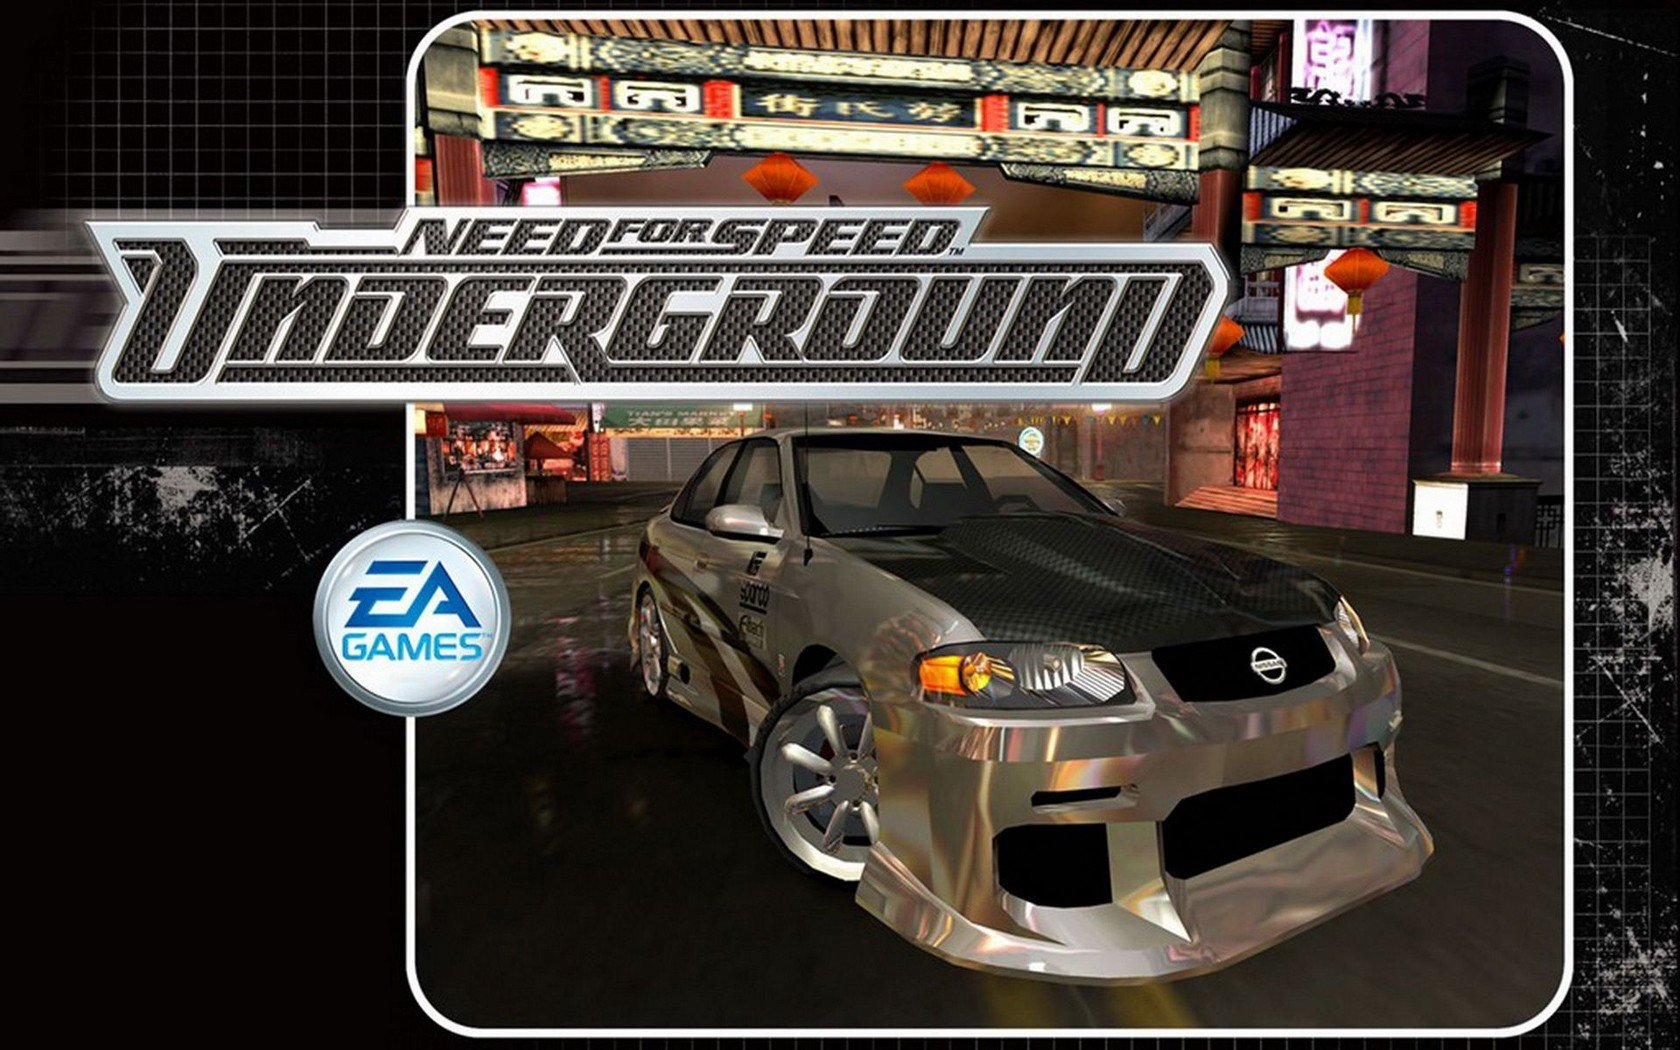 Video Games Cars Need For Speed Underground Games Nissan Sentra Pc